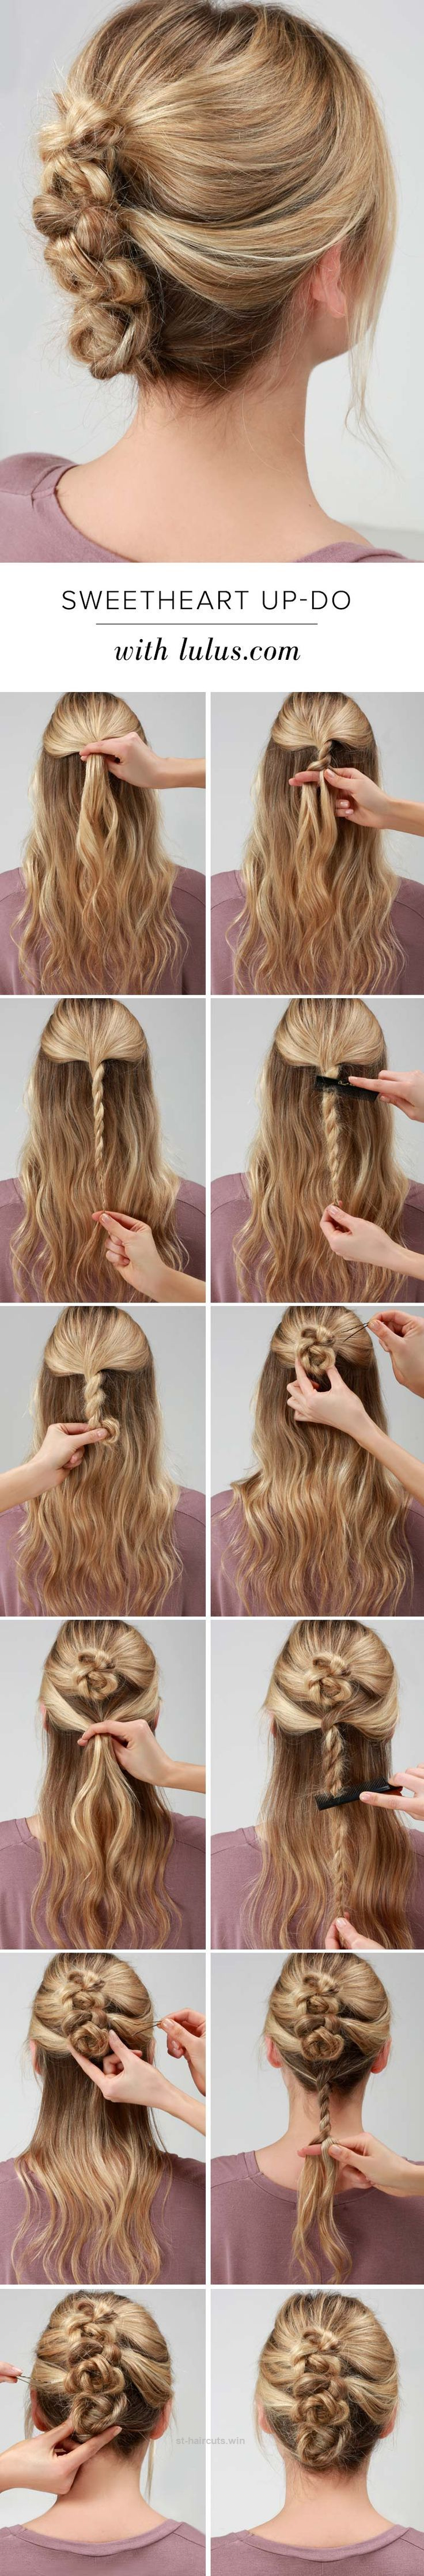 Splendid LuLu*s How-To: Sweetheart Twisted Up-Do  The post  LuLu*s How-To: Sweetheart Twisted Up-Do…  appeared first on  ST Haircuts .